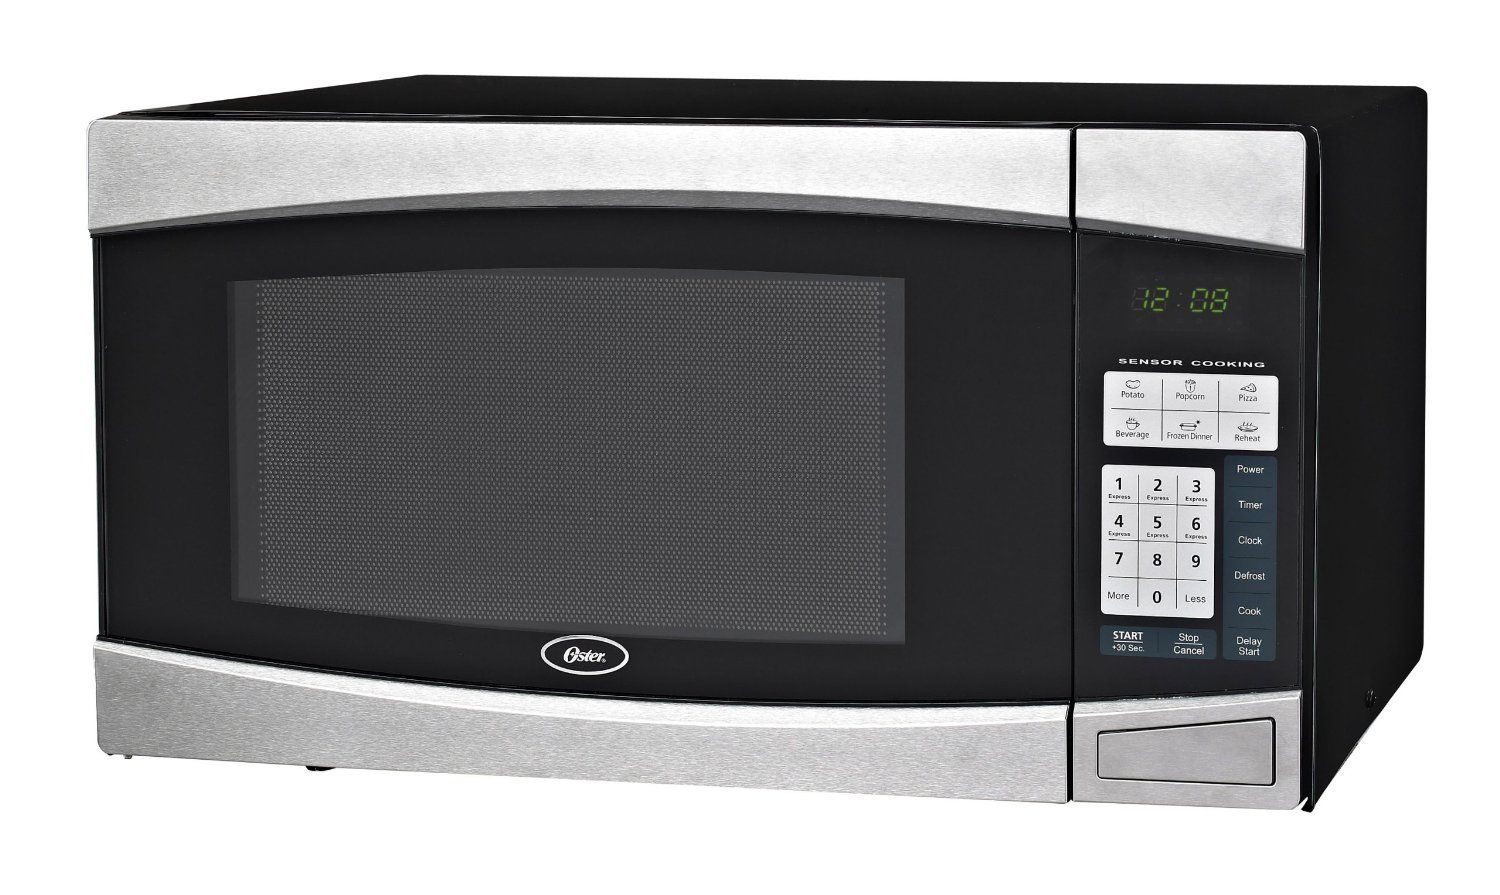 Oster Microwave The Oster Microwave Is An Excellent Microwave To Produce Delectable Popcorn B With Images Digital Microwave Black Microwave Countertop Microwave